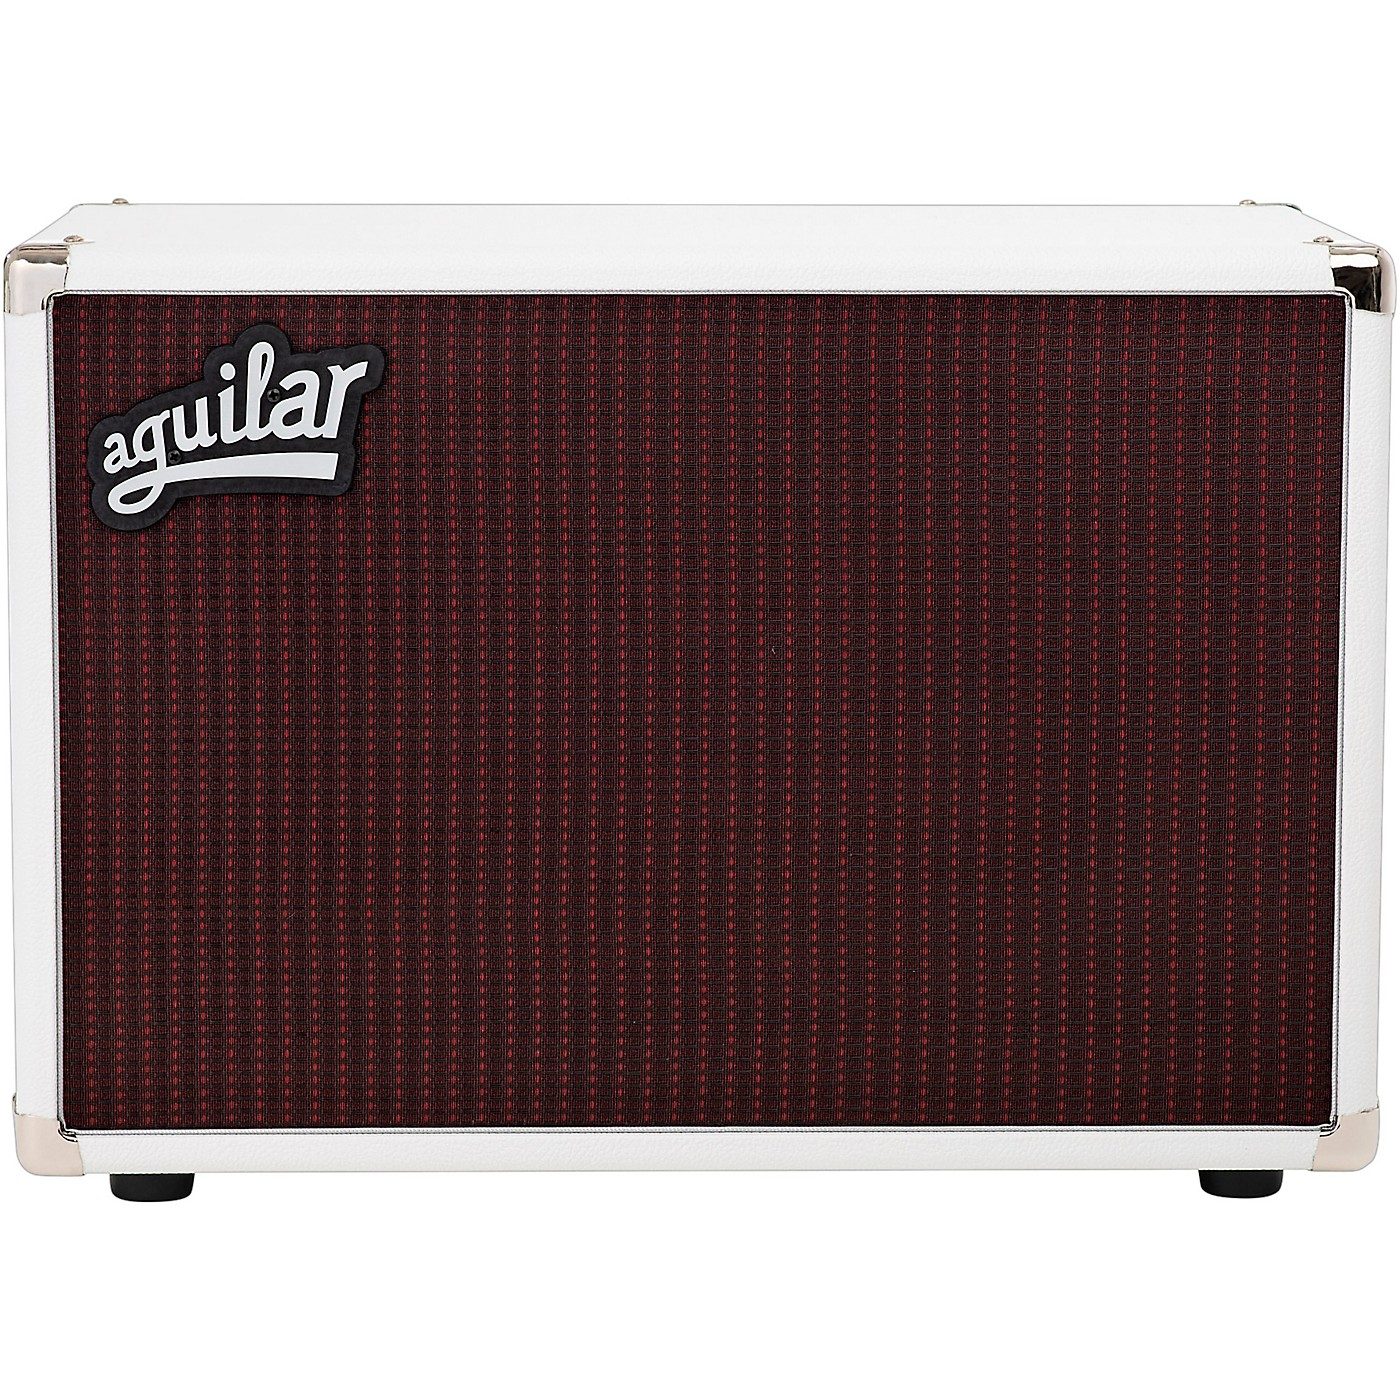 Aguilar DB 210 White Hot 350W 2x10 Bass Speaker Cabinet - 4 ohm thumbnail